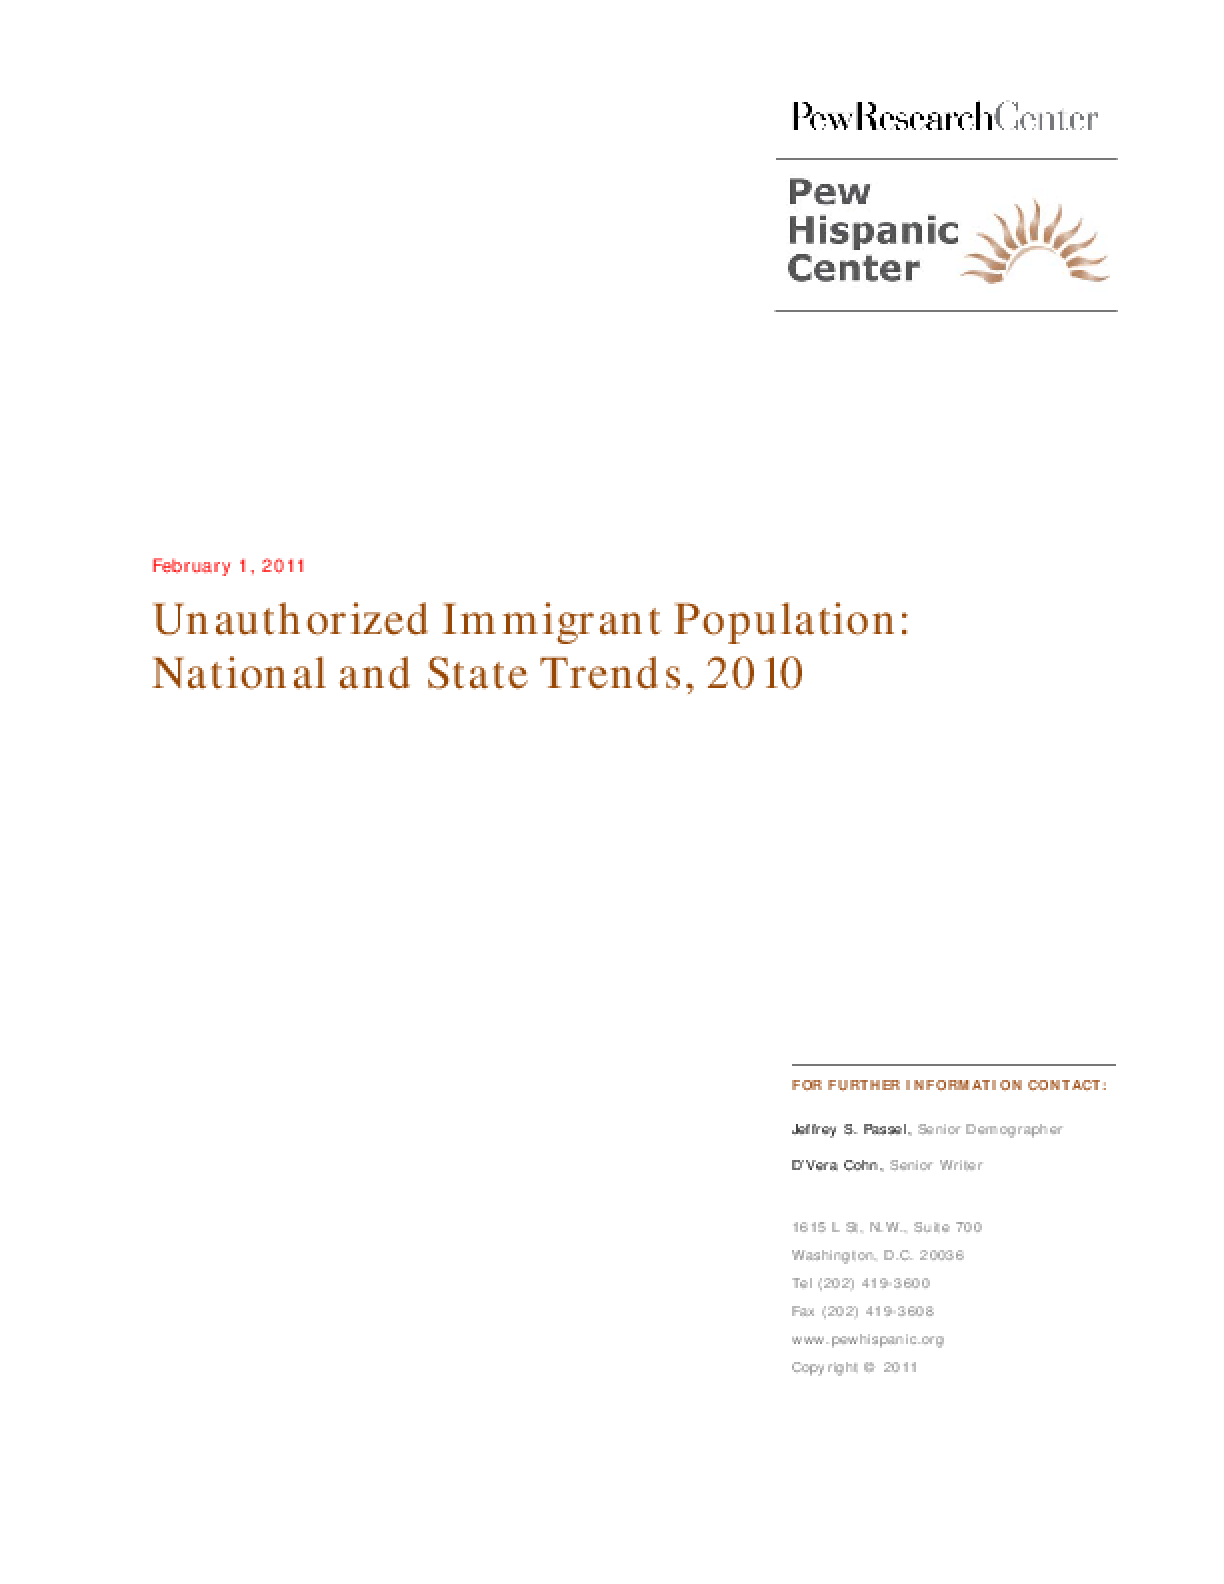 Unauthorized Immigrant Population: National and State Trends, 2010